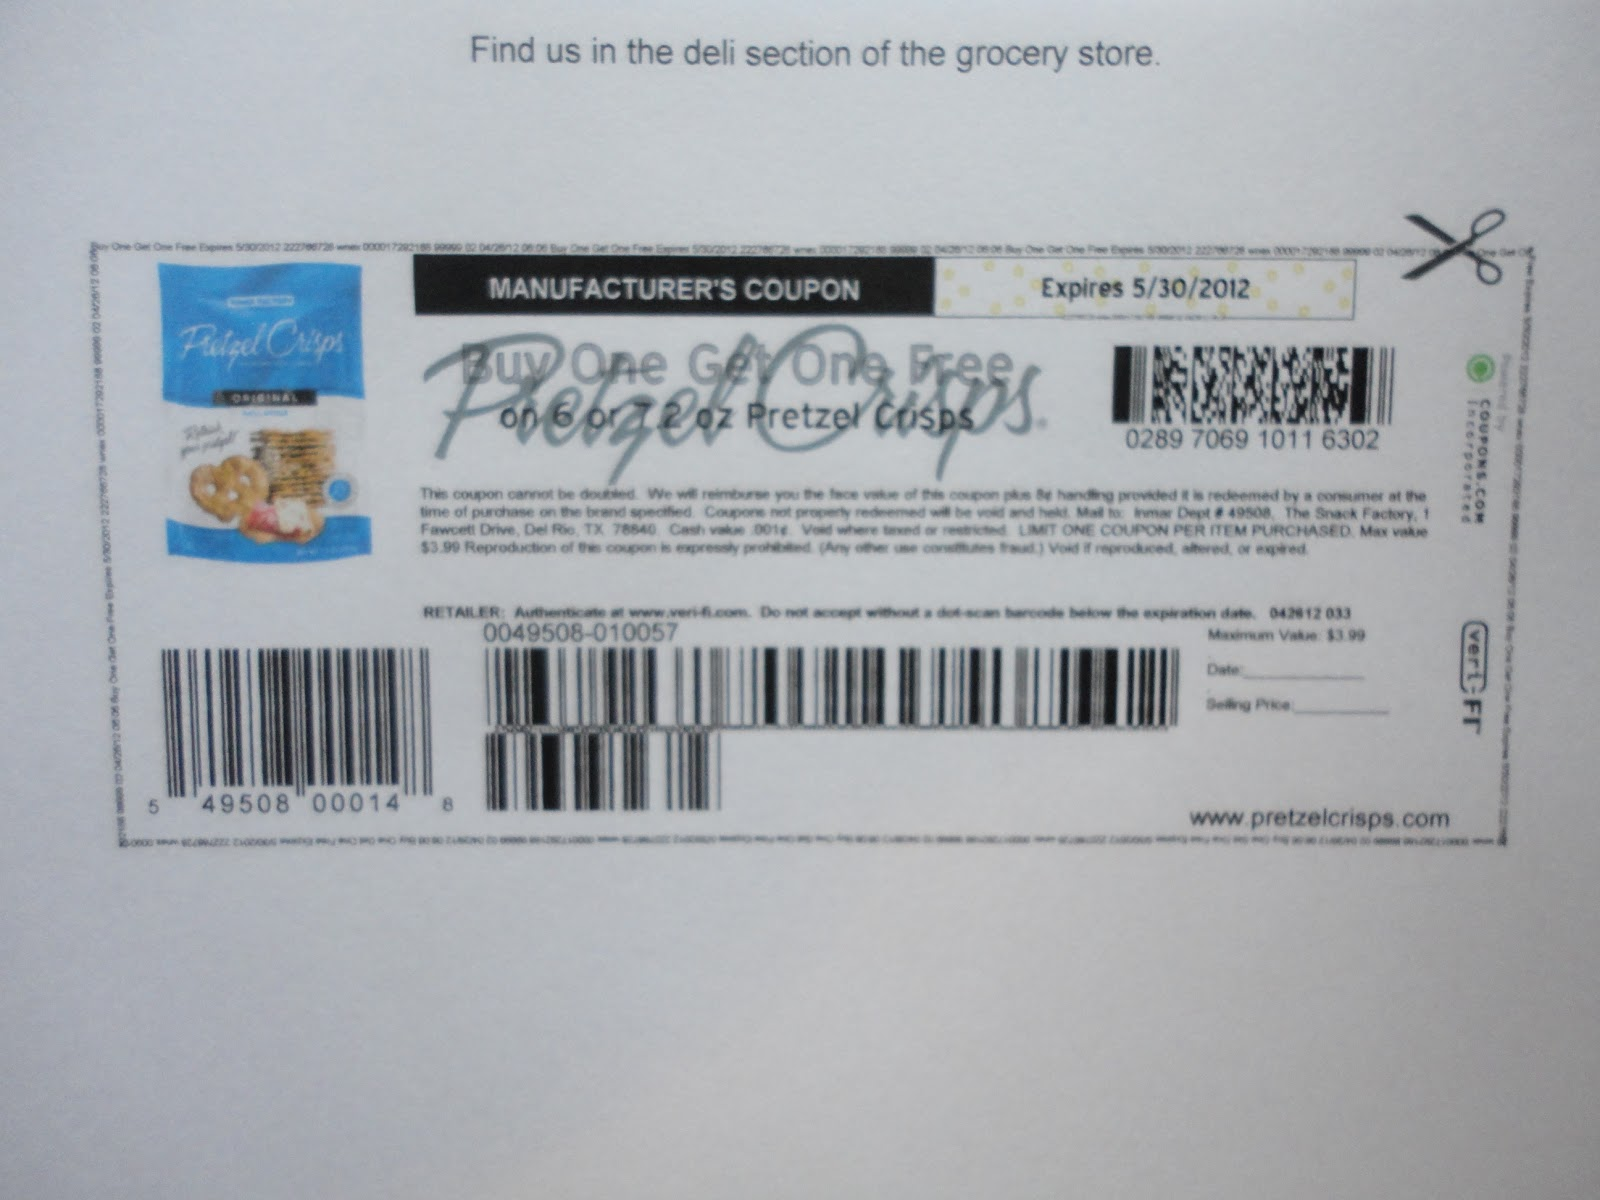 graphic about Philly Pretzel Factory Coupons Printable identify Snack manufacturing unit pretzel crisps printable coupon - Brunos